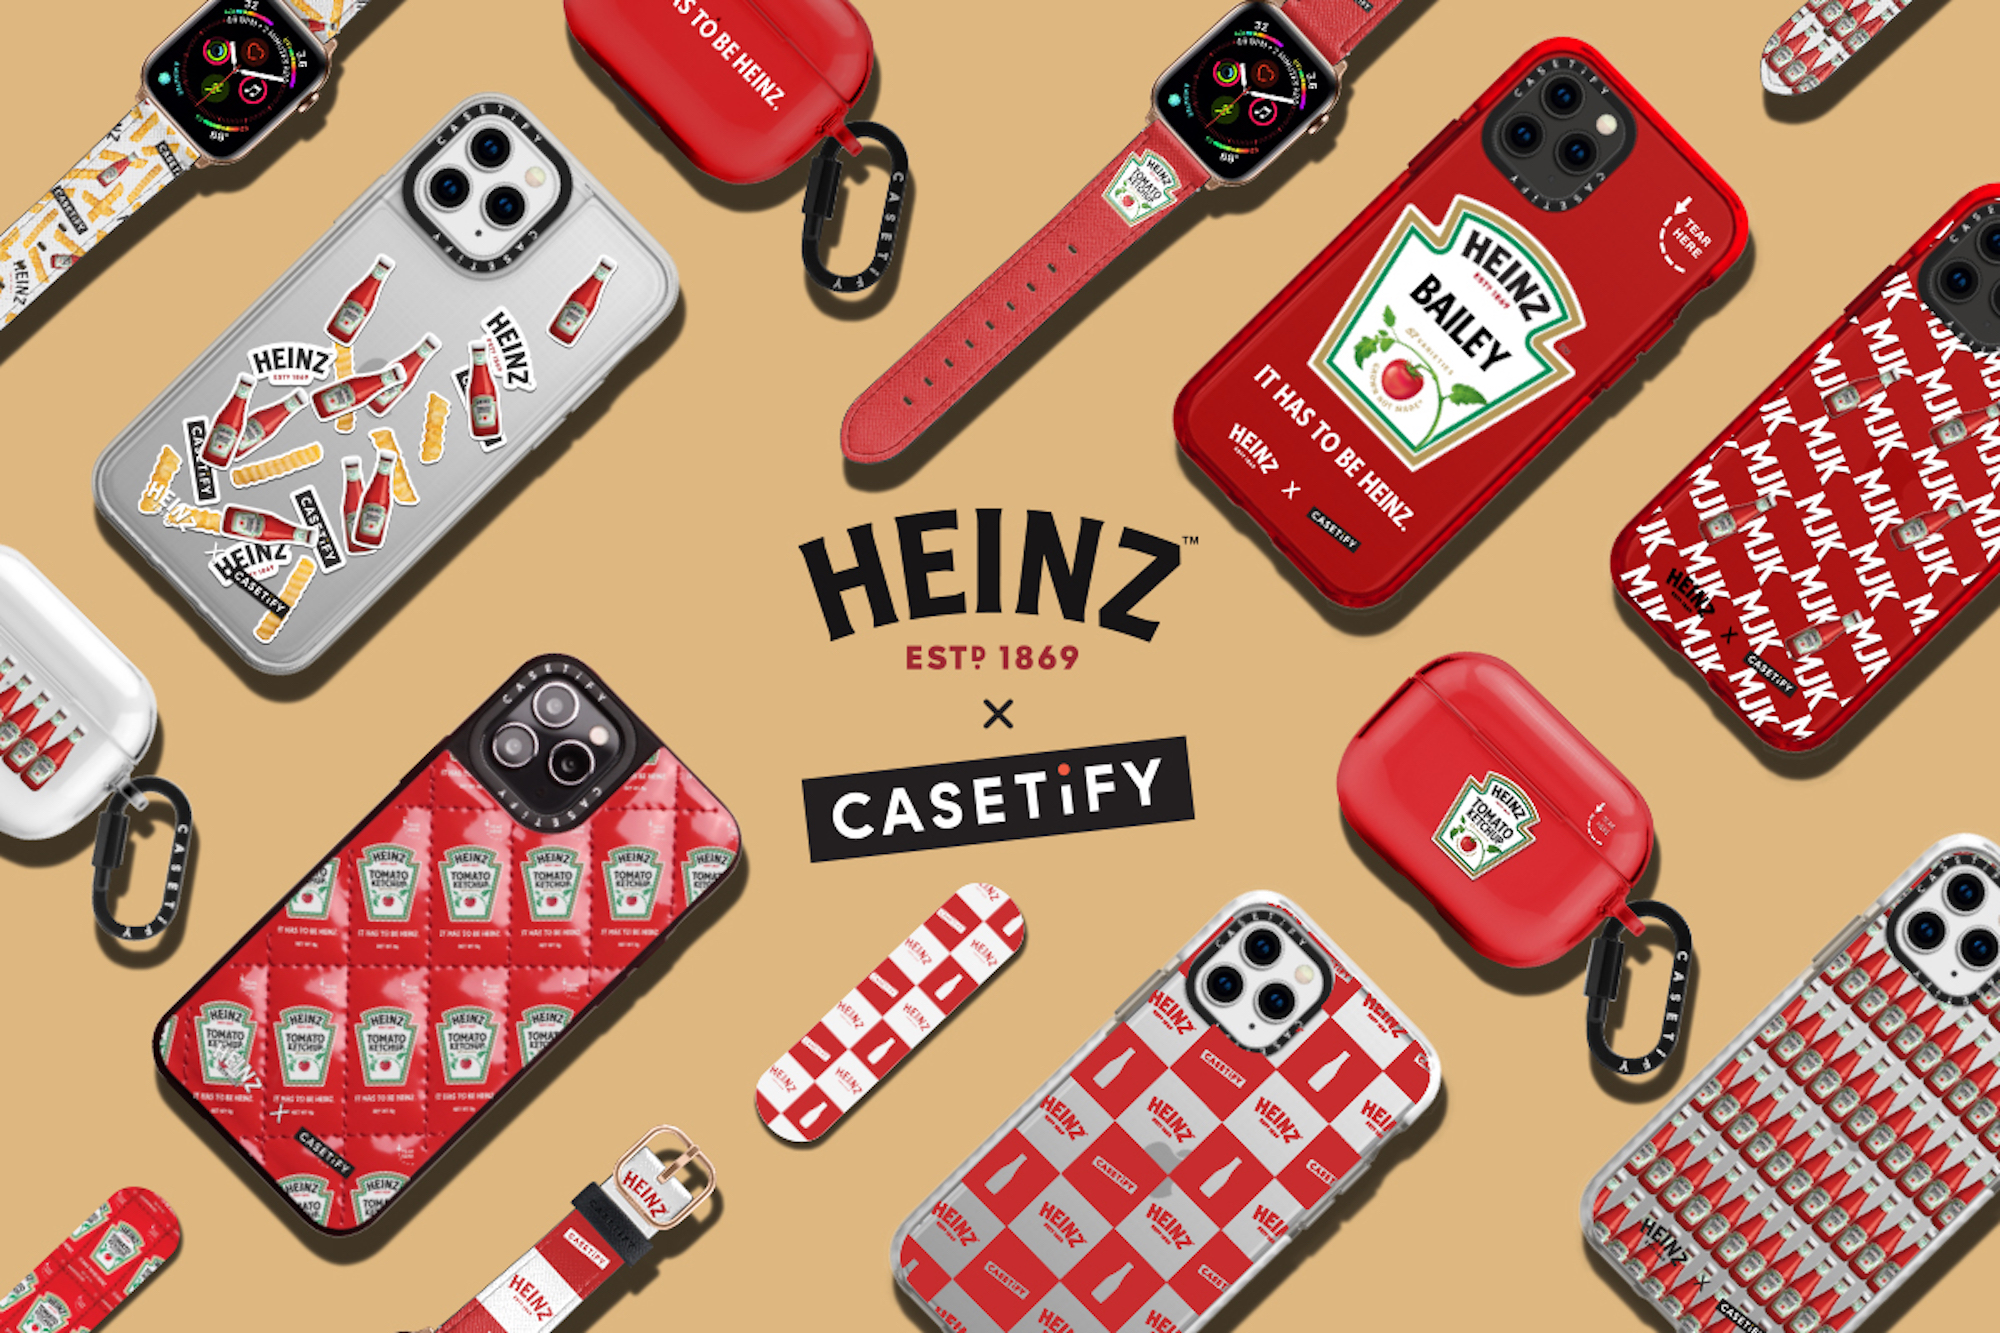 HEINZ and CASETiFY collaboration for world ketchup day